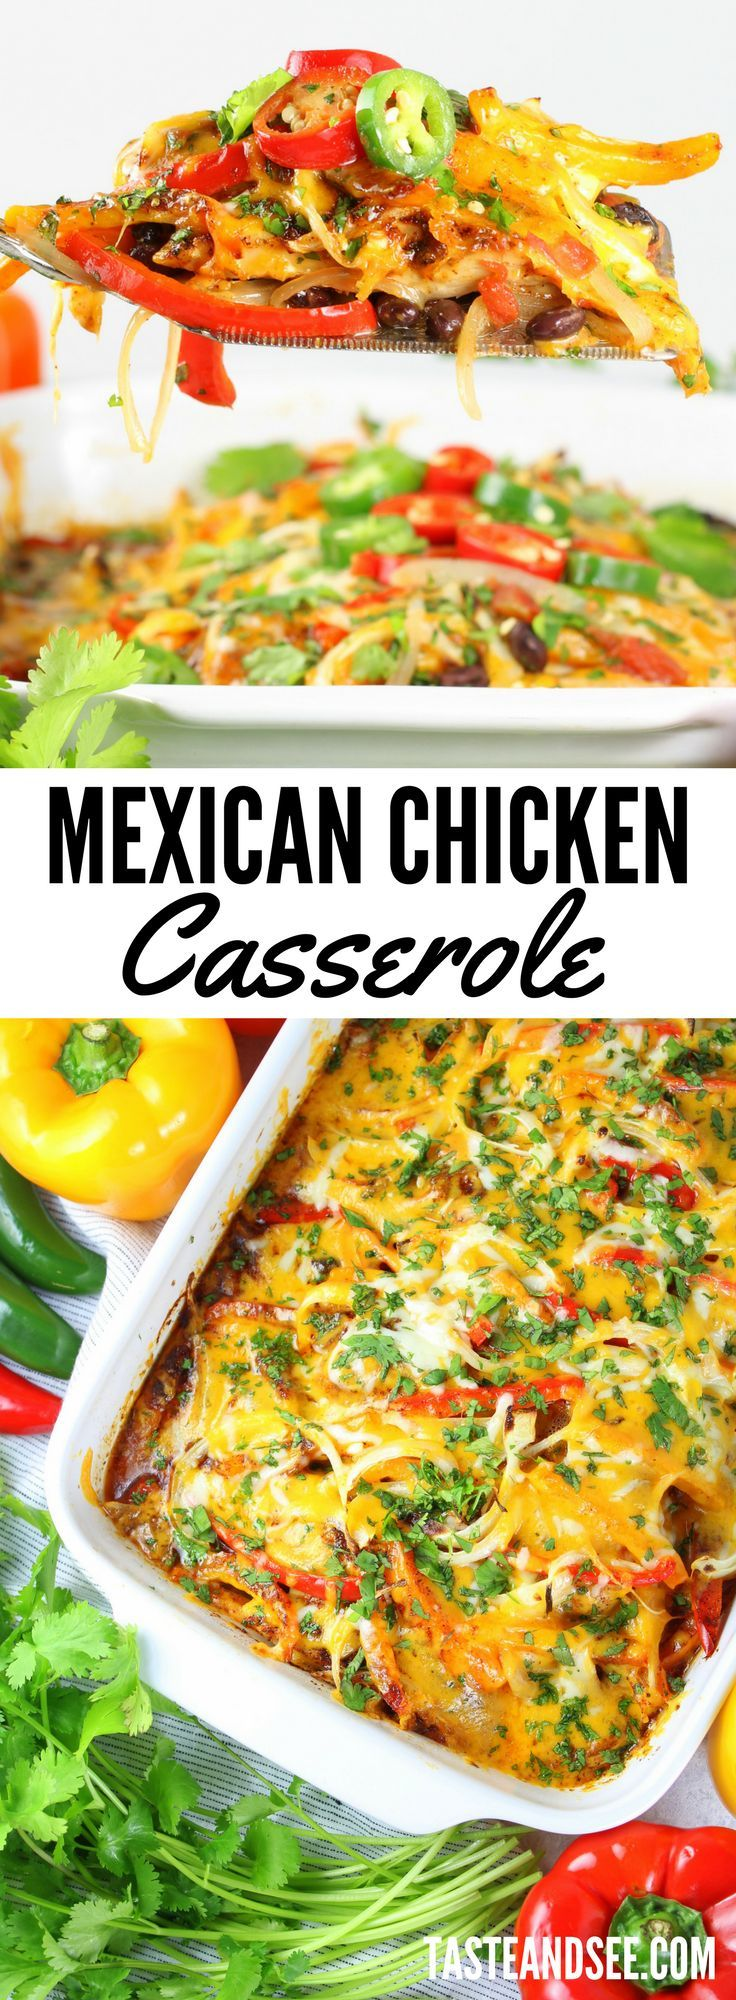 Mexican Chicken Casserole = everything you want in a weeknight recipe: quick, easy and delicious!  With lean chicken, healthy veggies, and perfectly balanced zesty flavor… this one pan meal will definitely be making a regular dinner time appearance! #chickenrecipes   #mexicanfood  https://tasteandsee.com